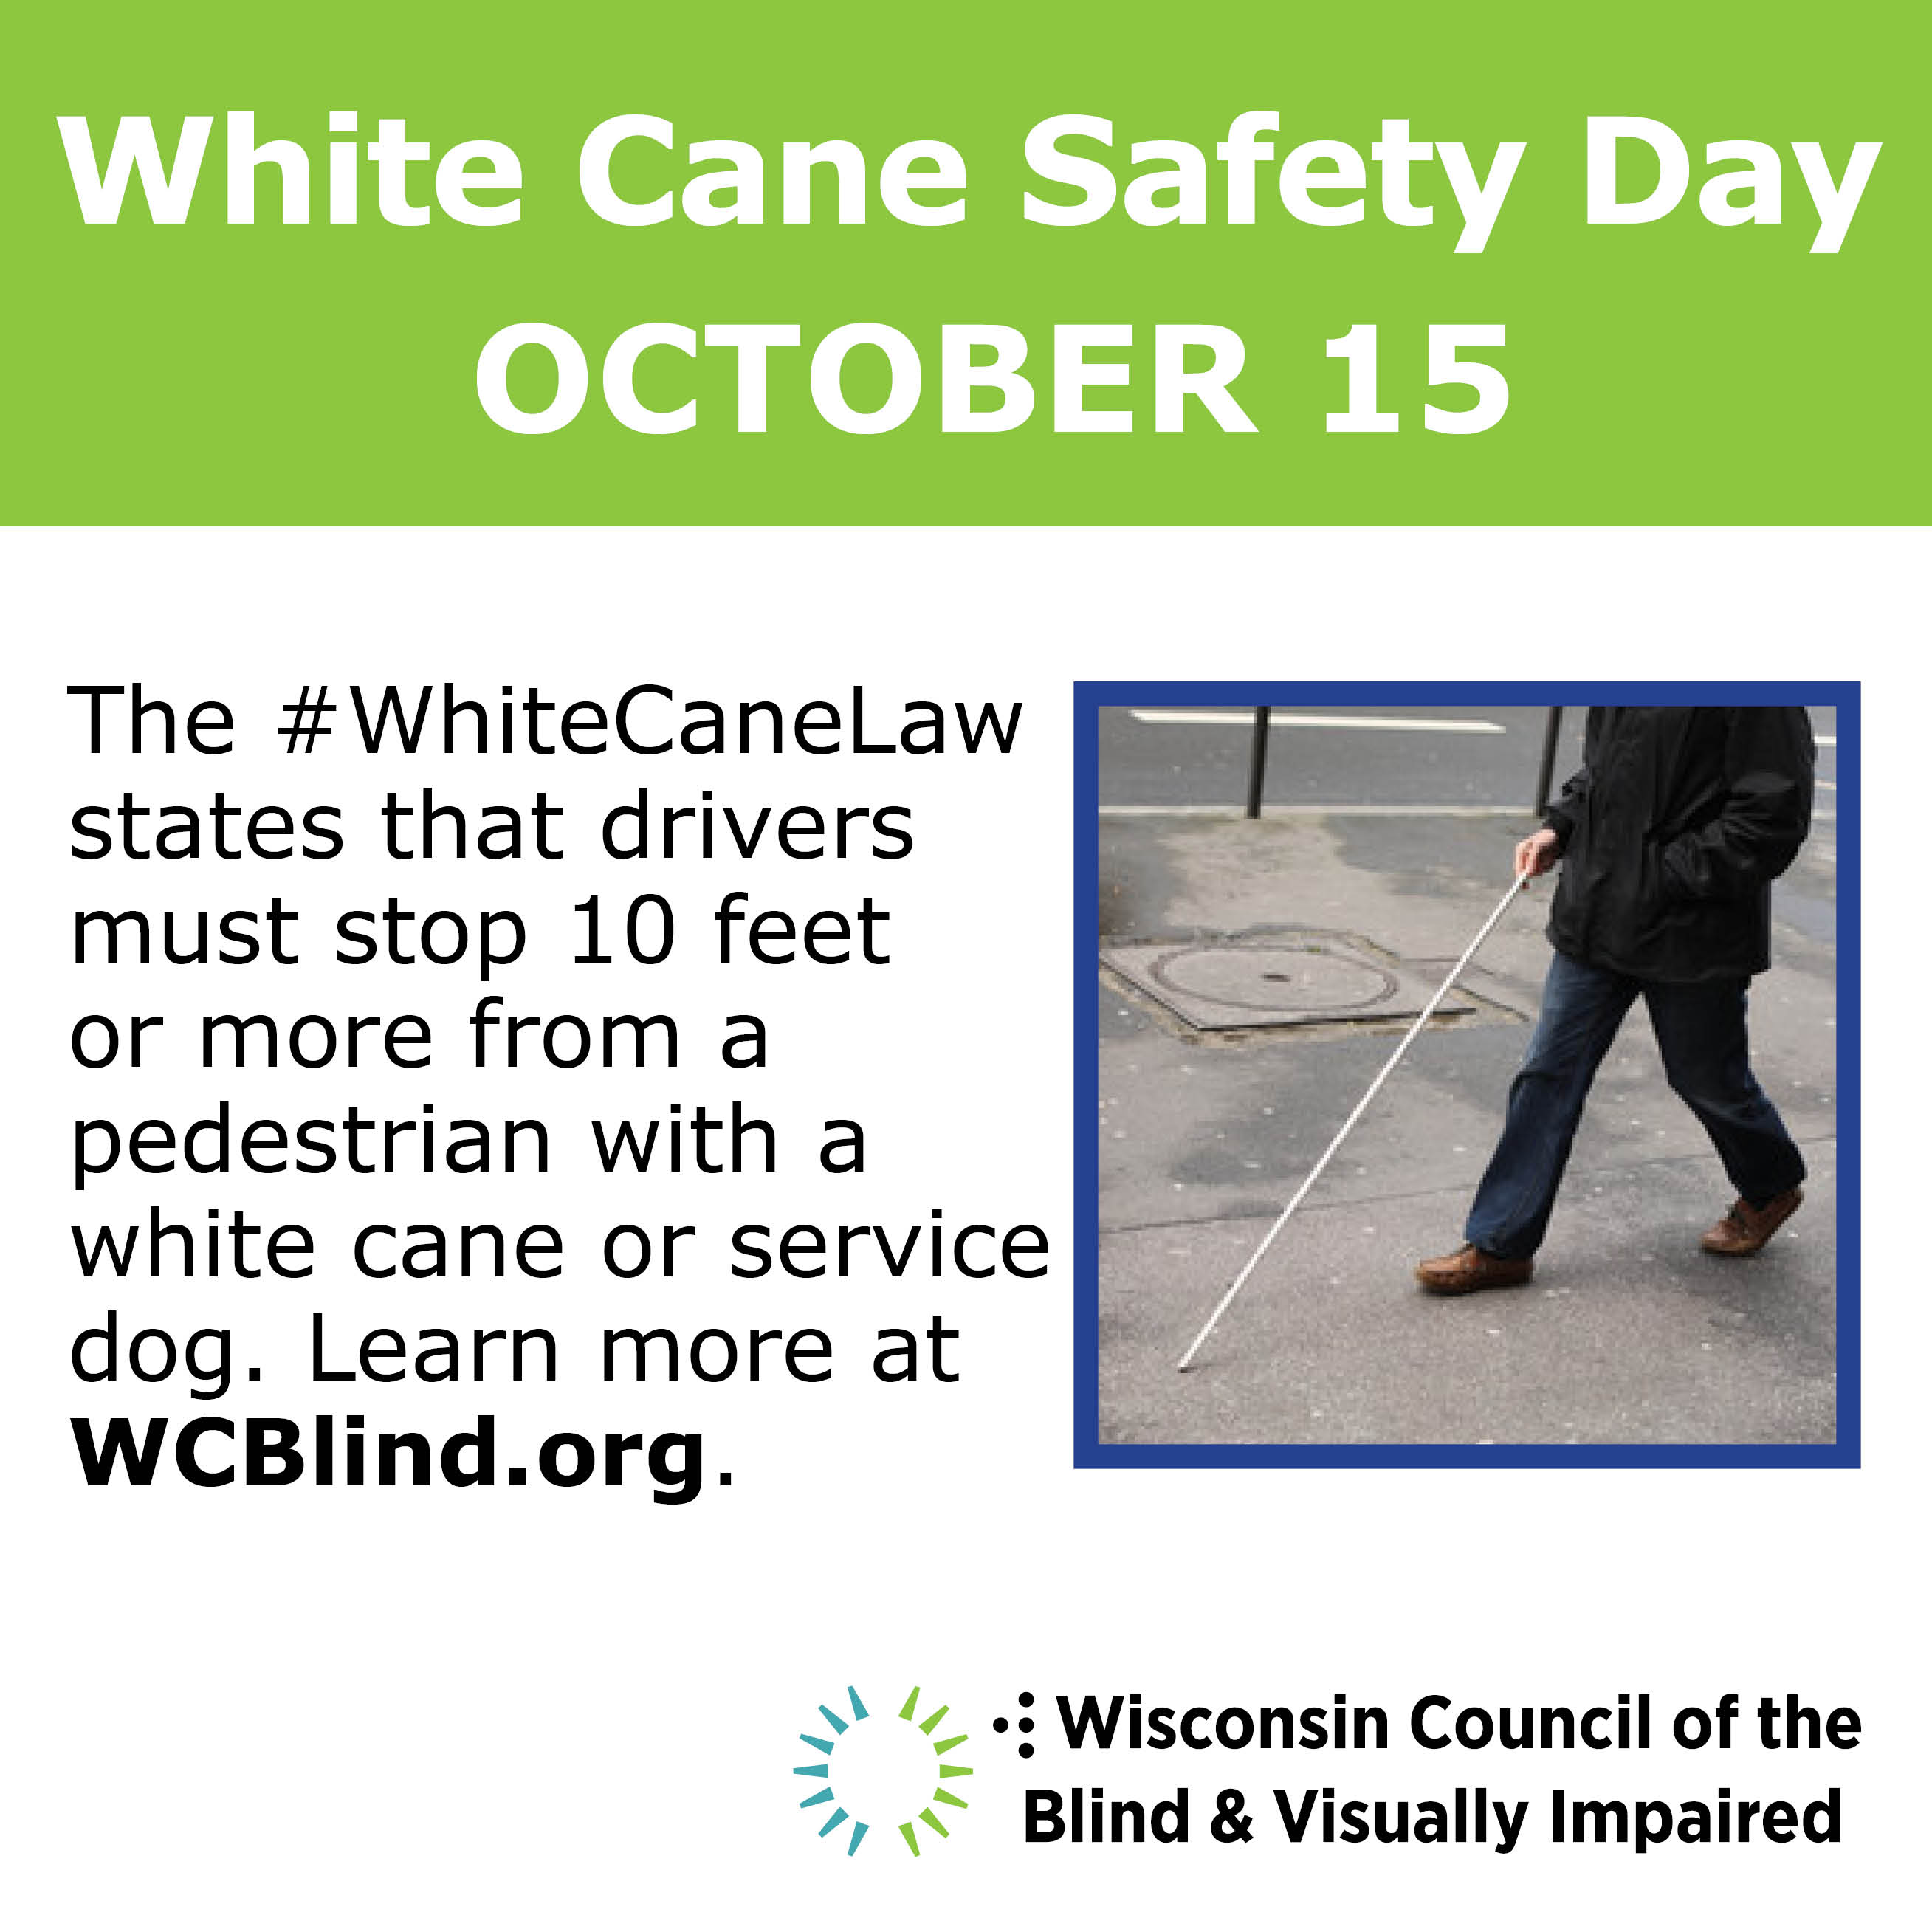 White Cane Safety Day October 15 alert